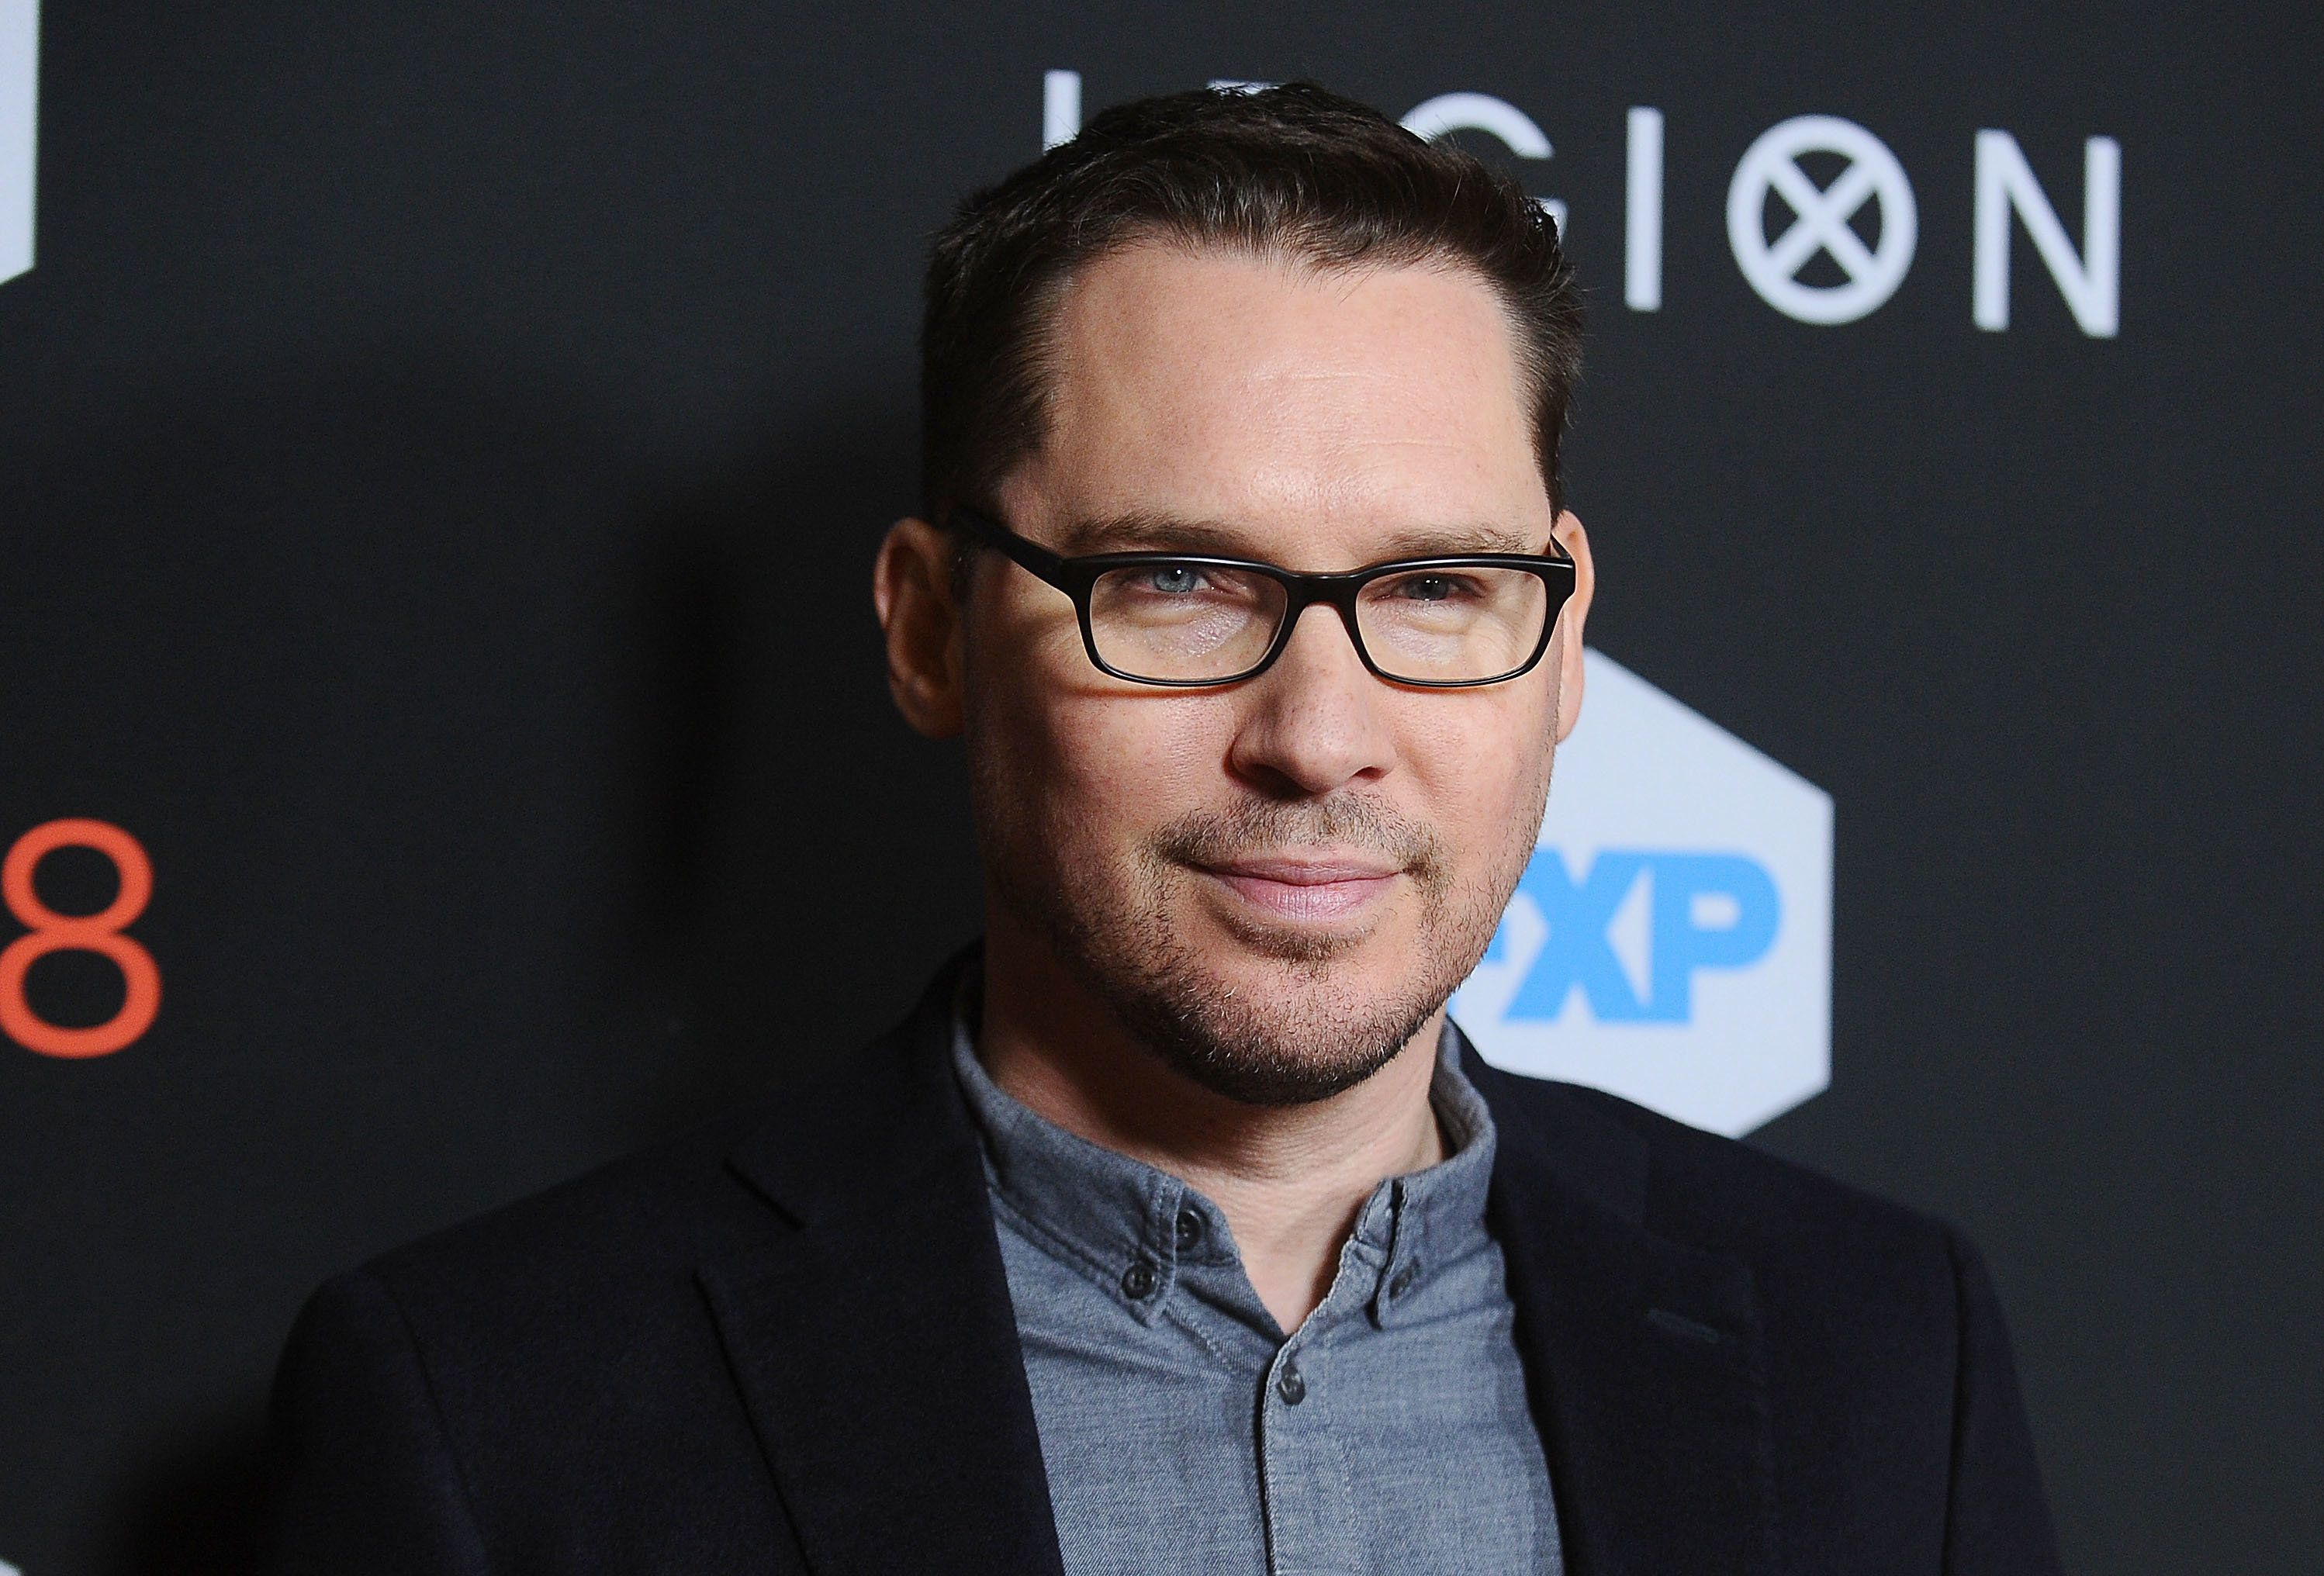 Bafta Suspends Bryan Singer's Nomination For Bohemian